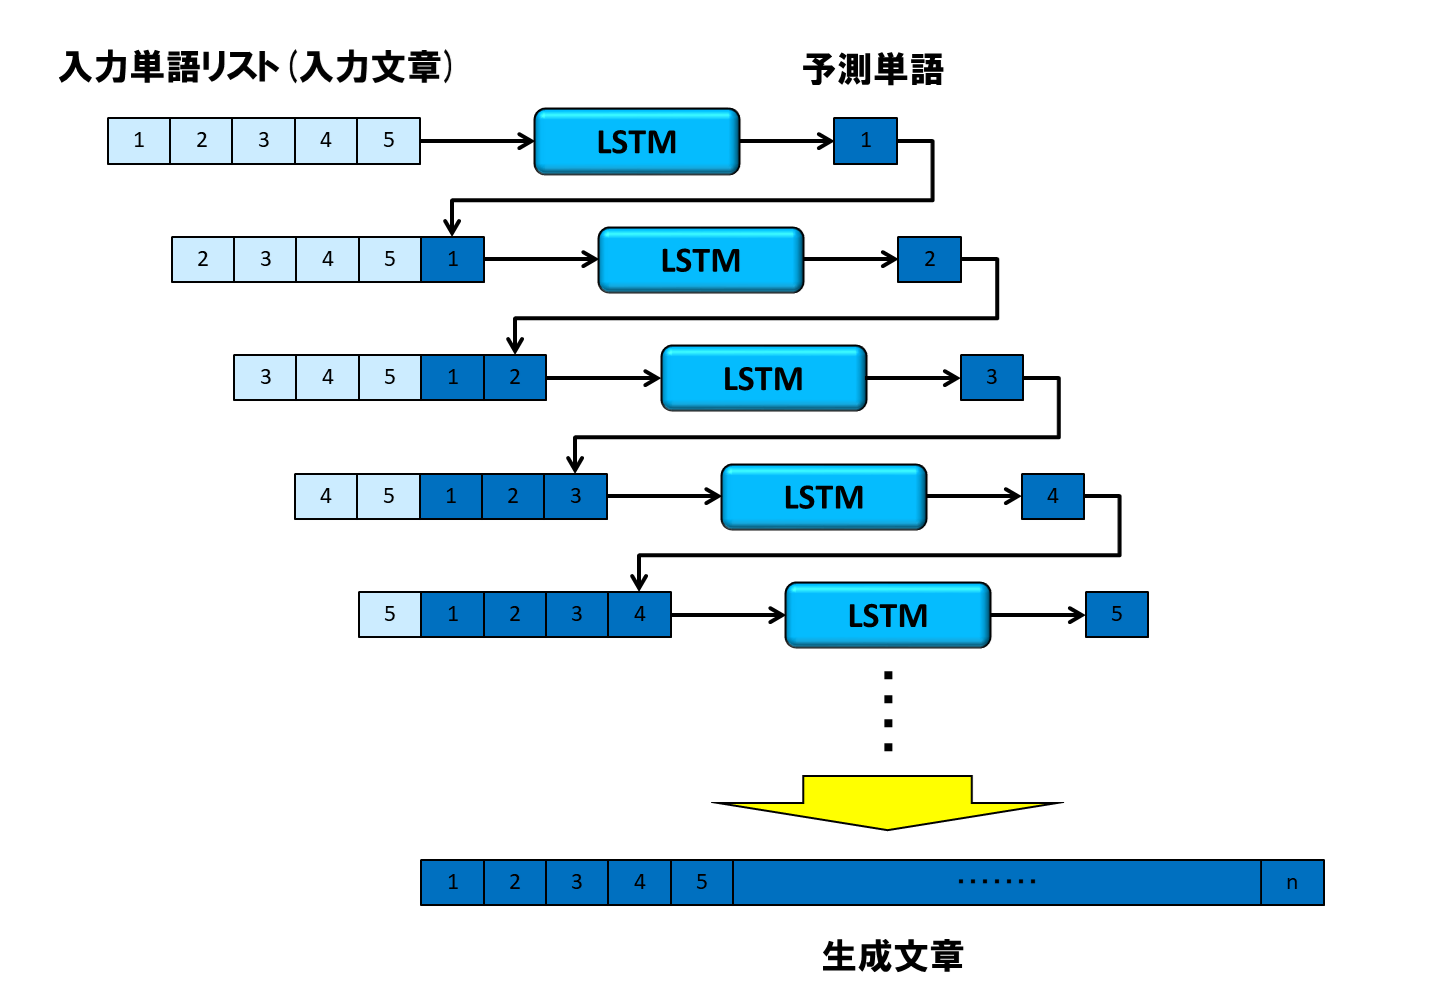 fig20190614_01.png